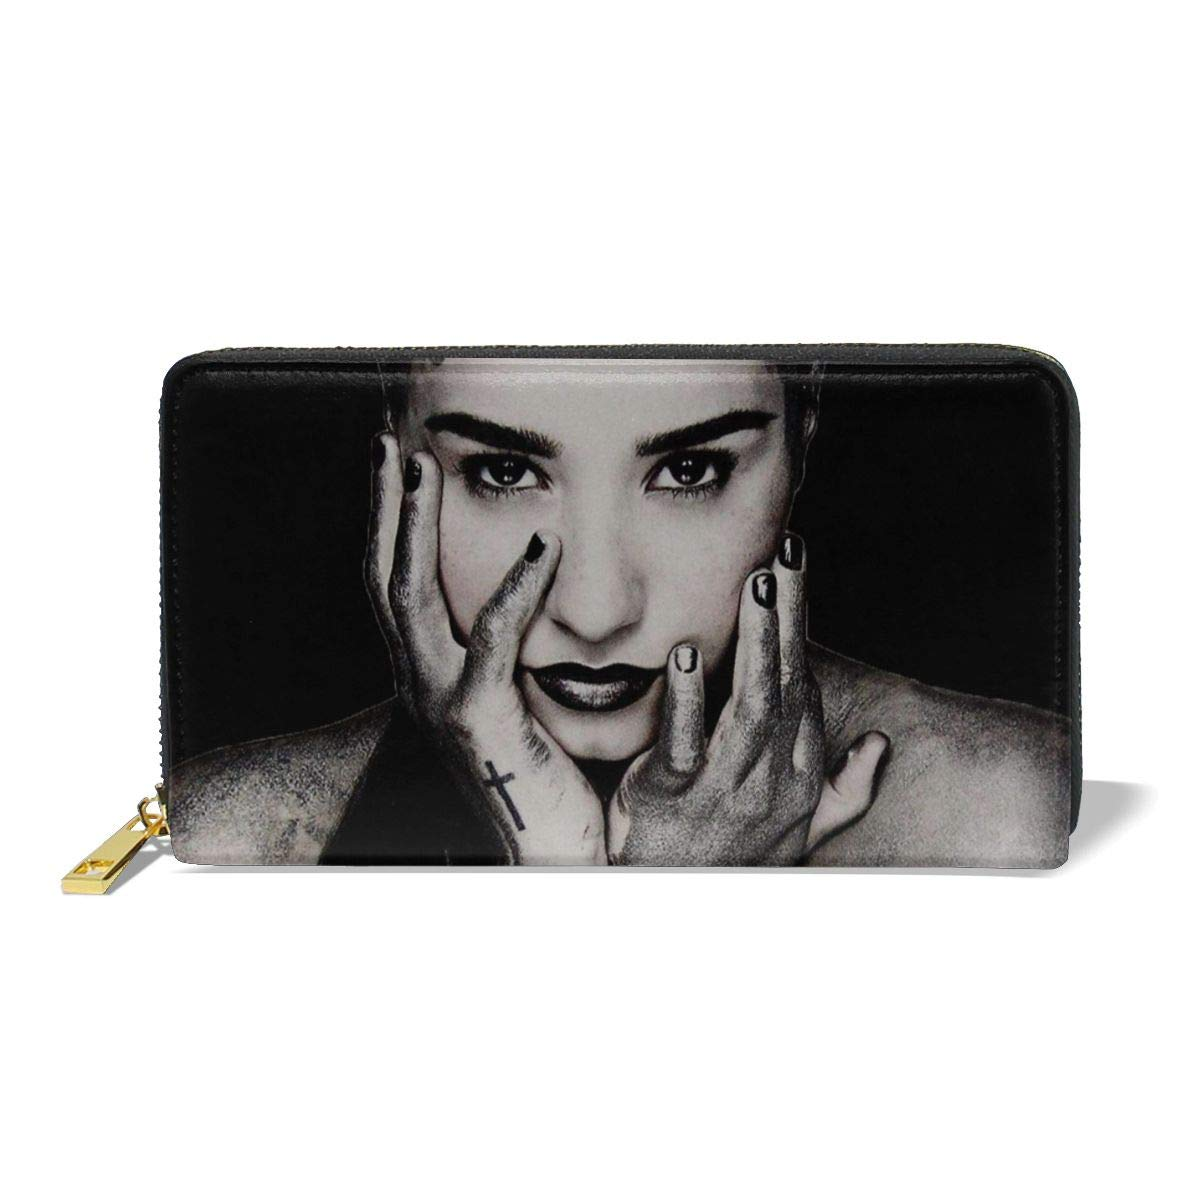 XJLGGMHDS Demi Lovato Unisex Wallet Zipper Closure Card Slots Zippered Coin Pouch